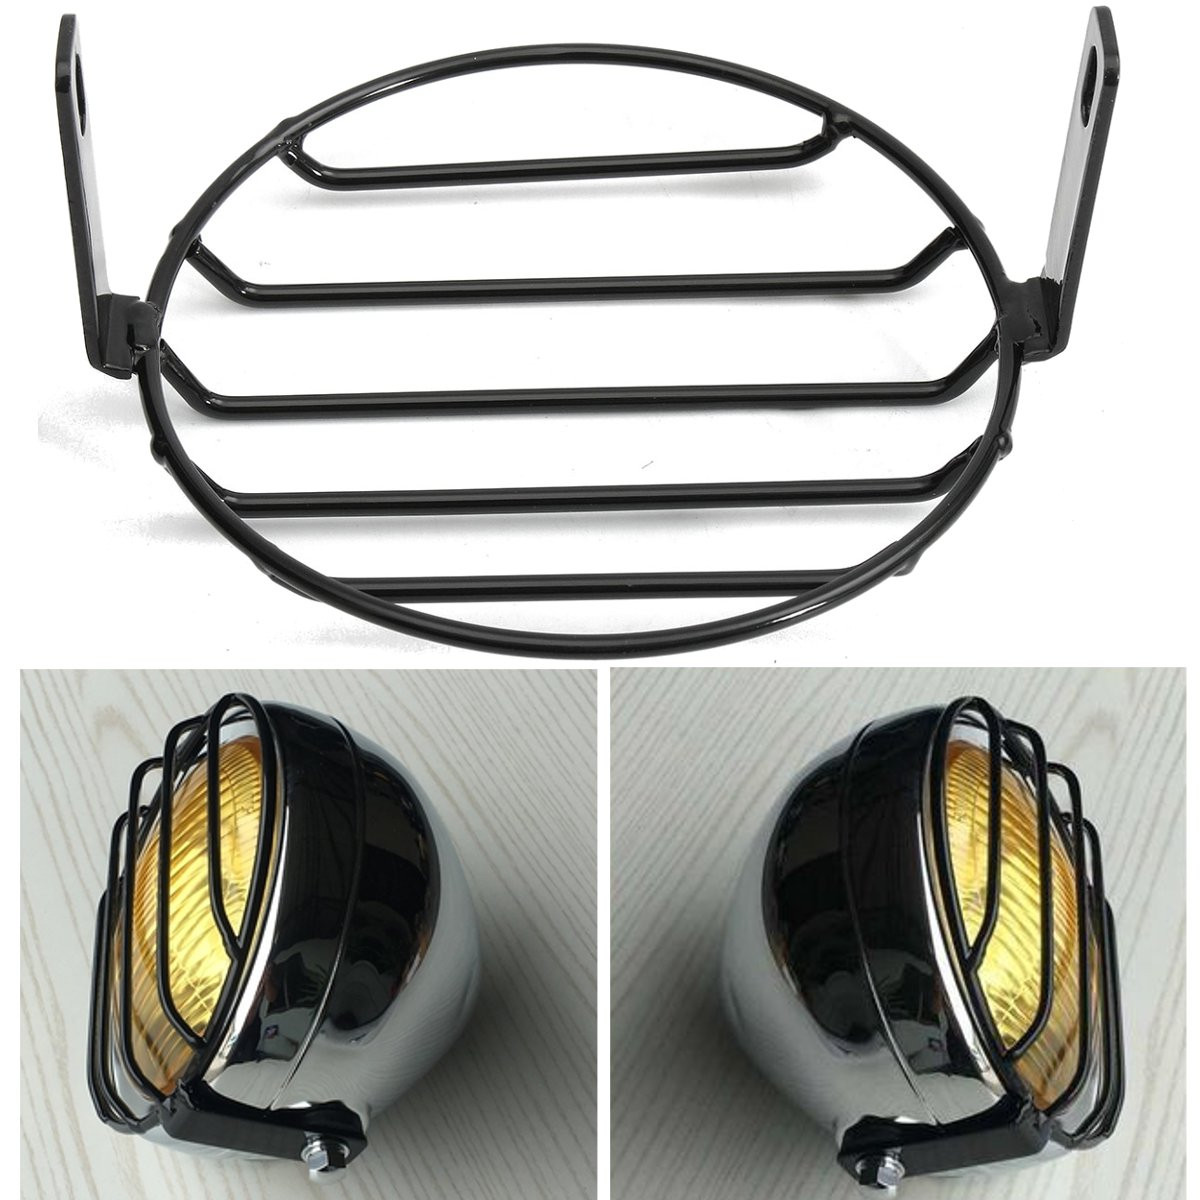 6 4 moto grille r tro phare lampe headlight couvre pour. Black Bedroom Furniture Sets. Home Design Ideas